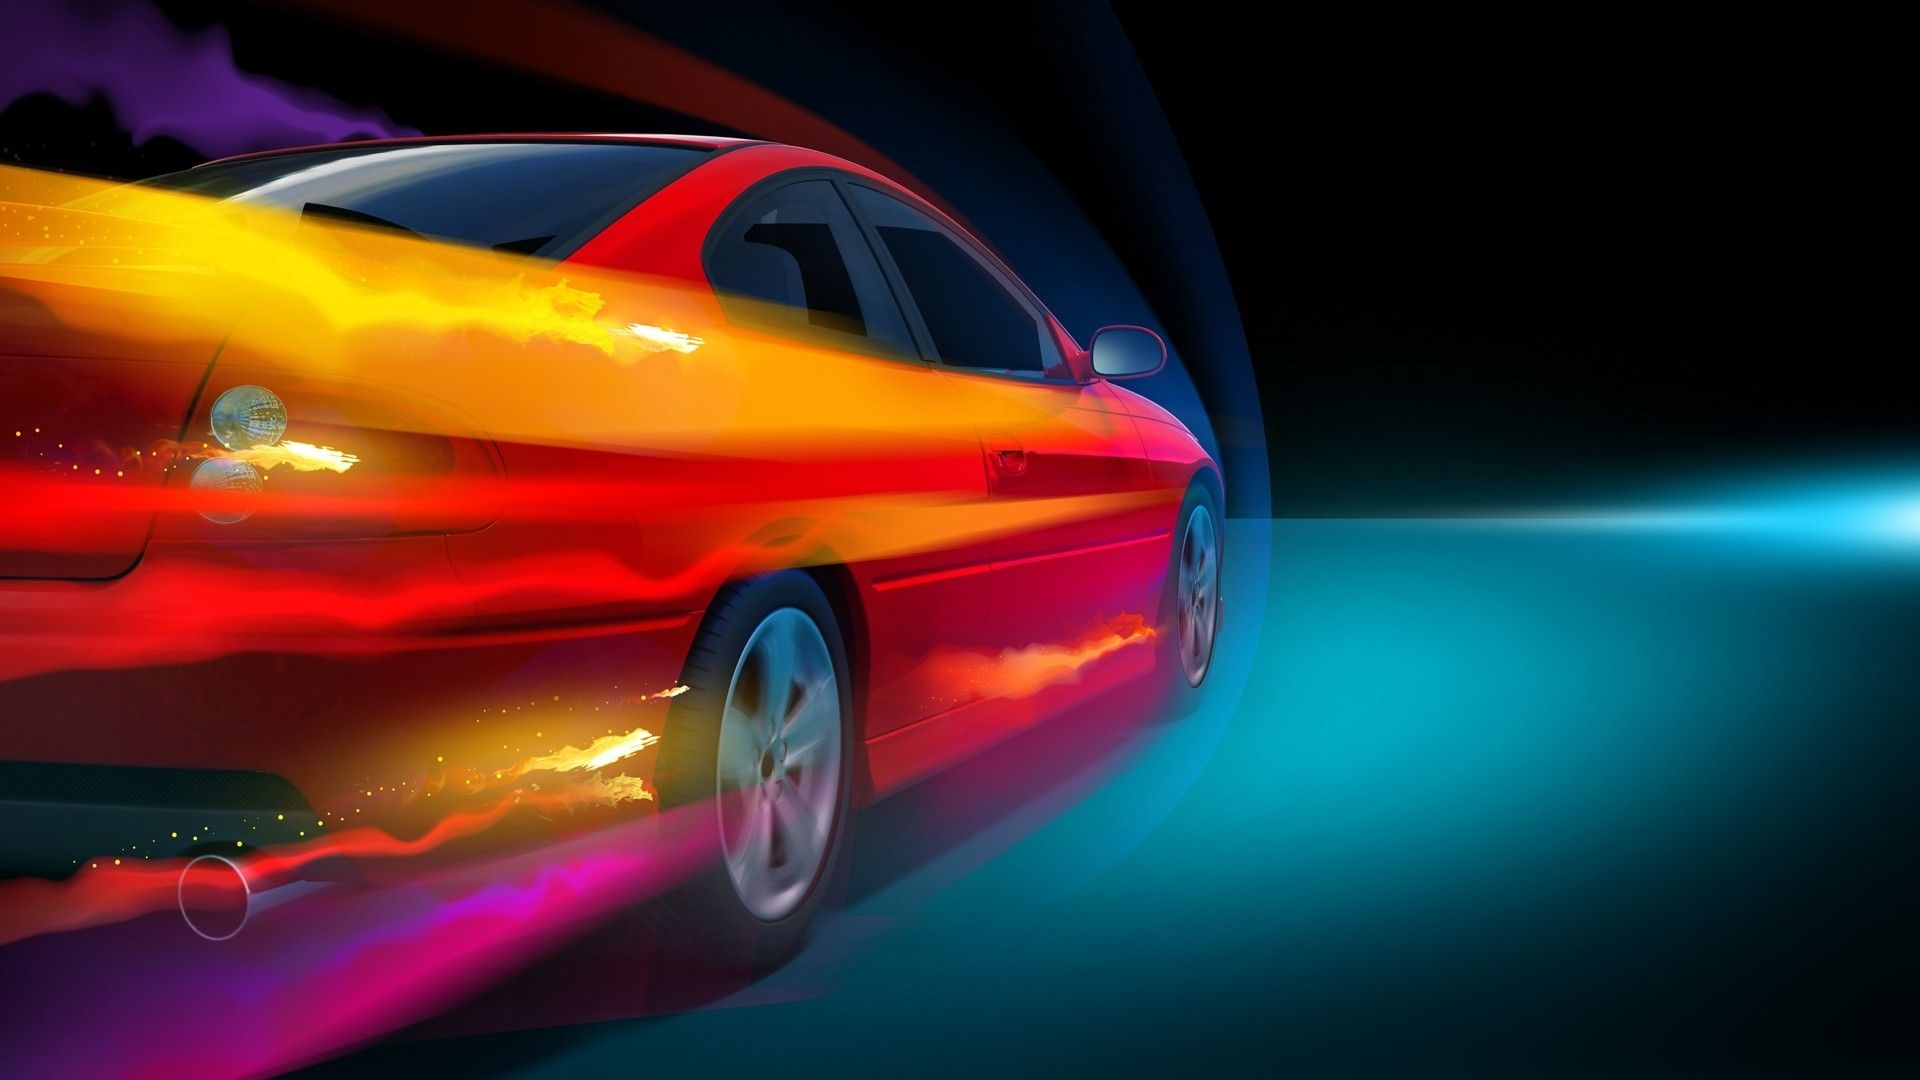 Background, Speed, Abstract Car Wallpapers Hd